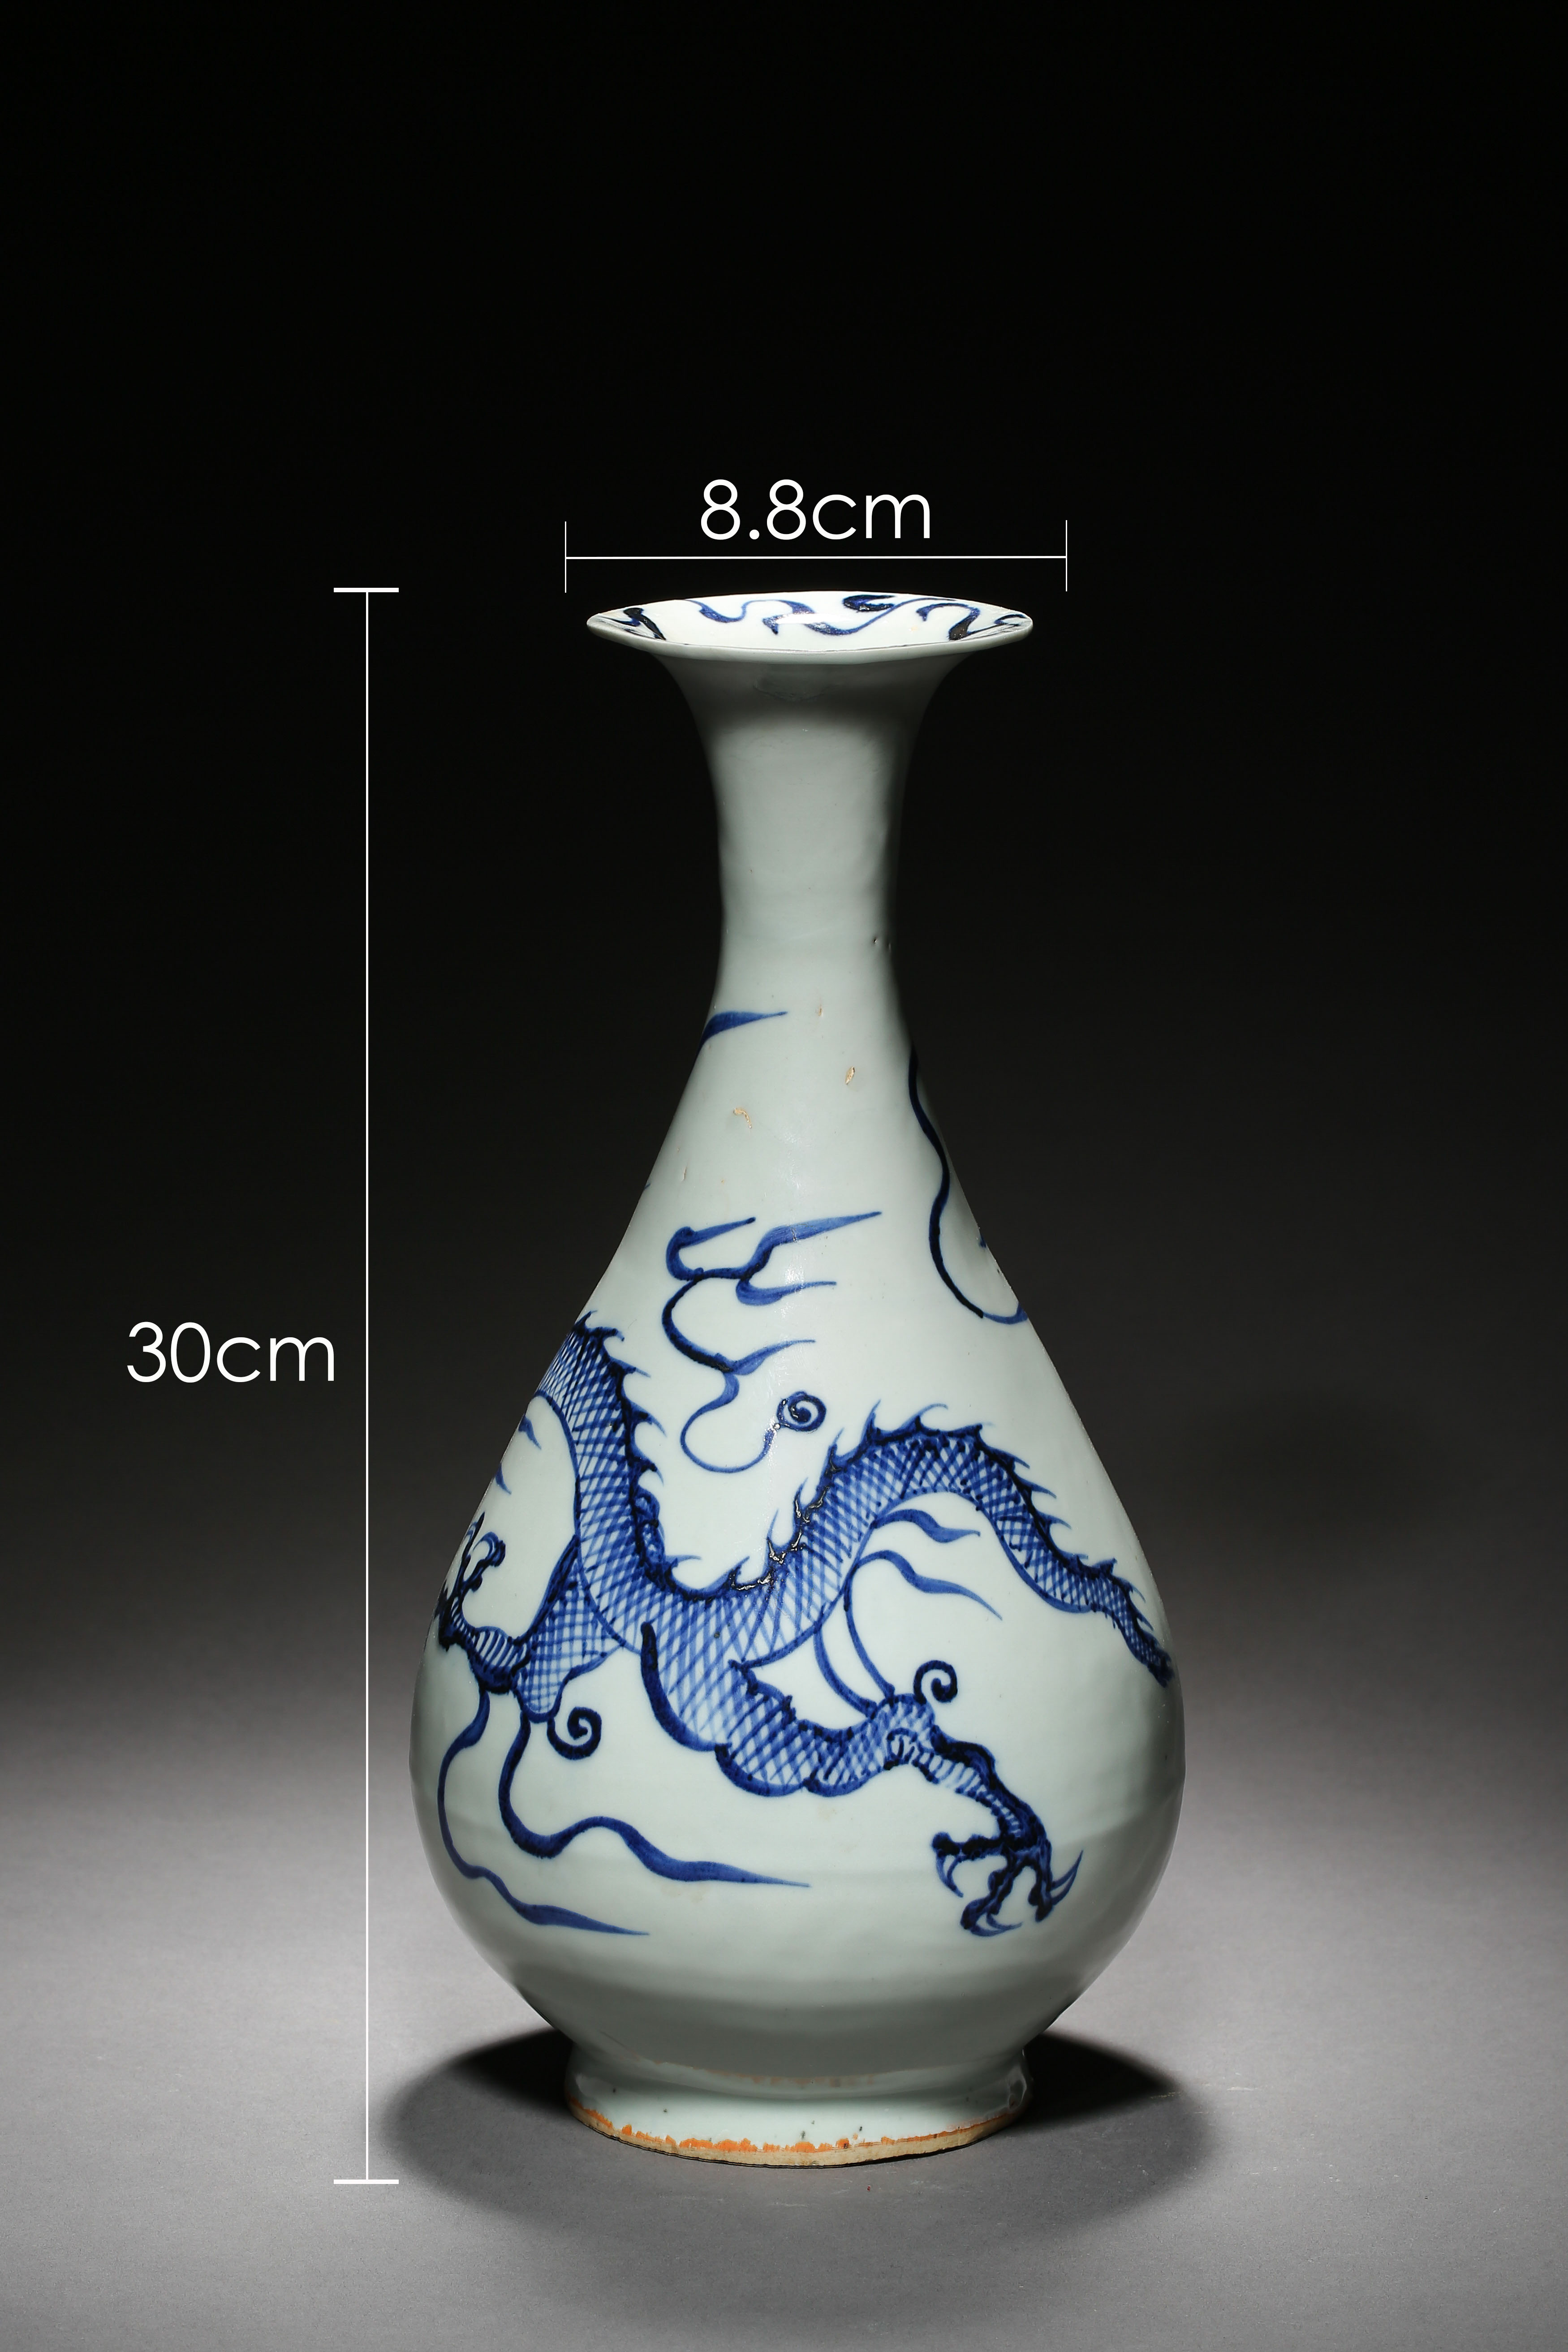 BLUE AND WHITE DRAGON PATTERN VASE, YUAN DYNASTY, CHINA - Image 2 of 8